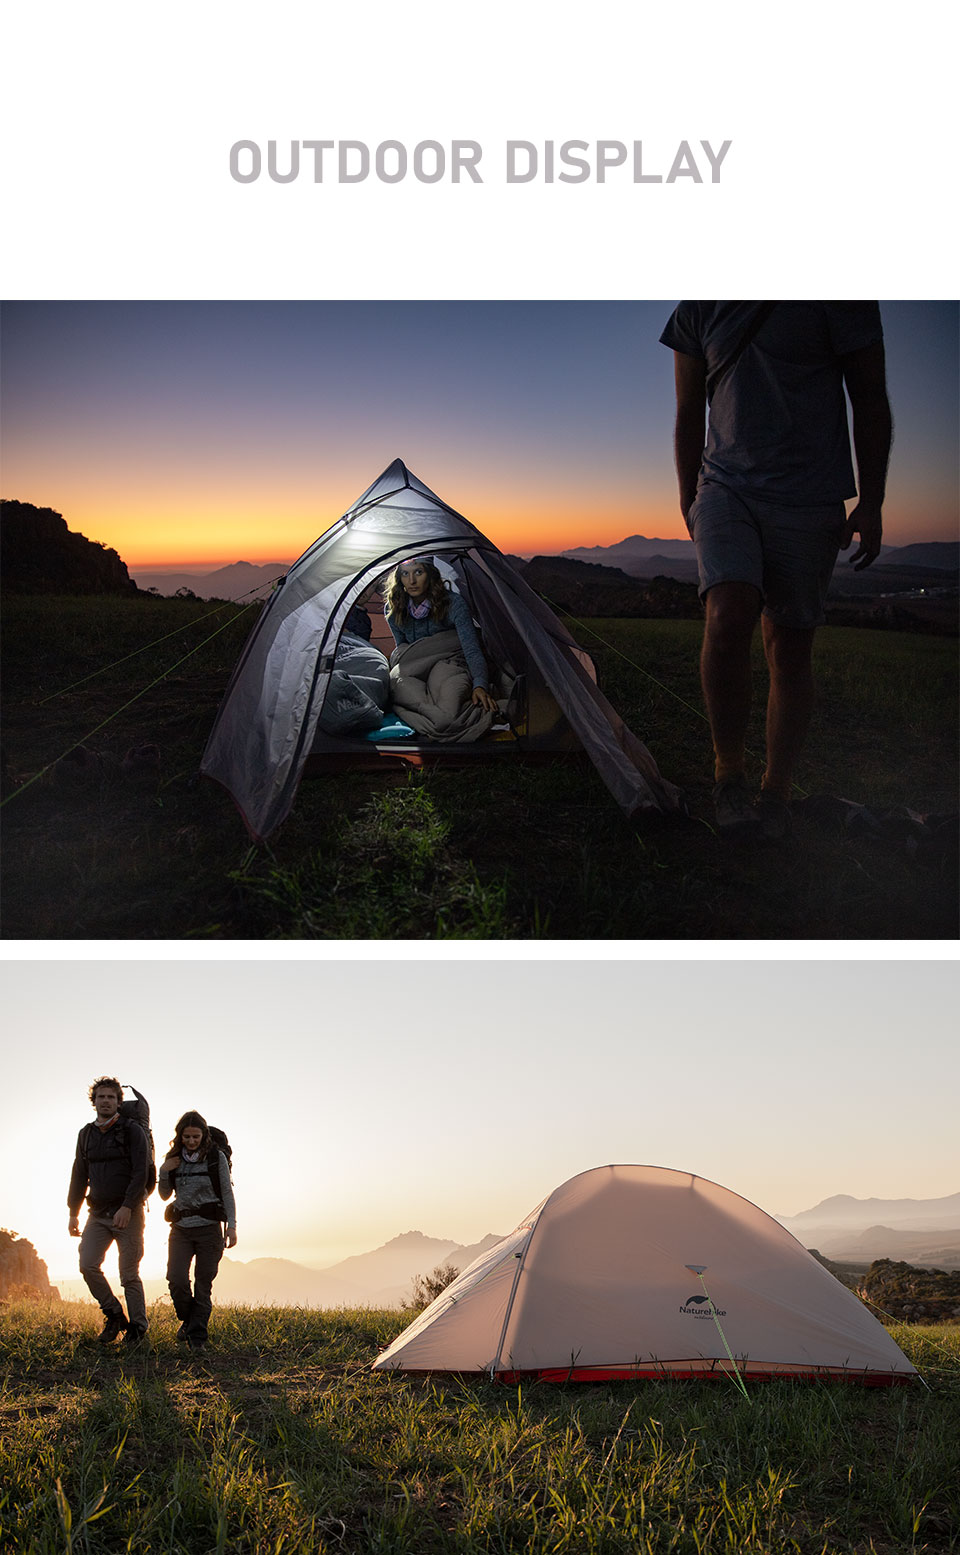 Ultralight Tent Free Standing 20D Fabric Camping Tents For 2 Person With free Mat